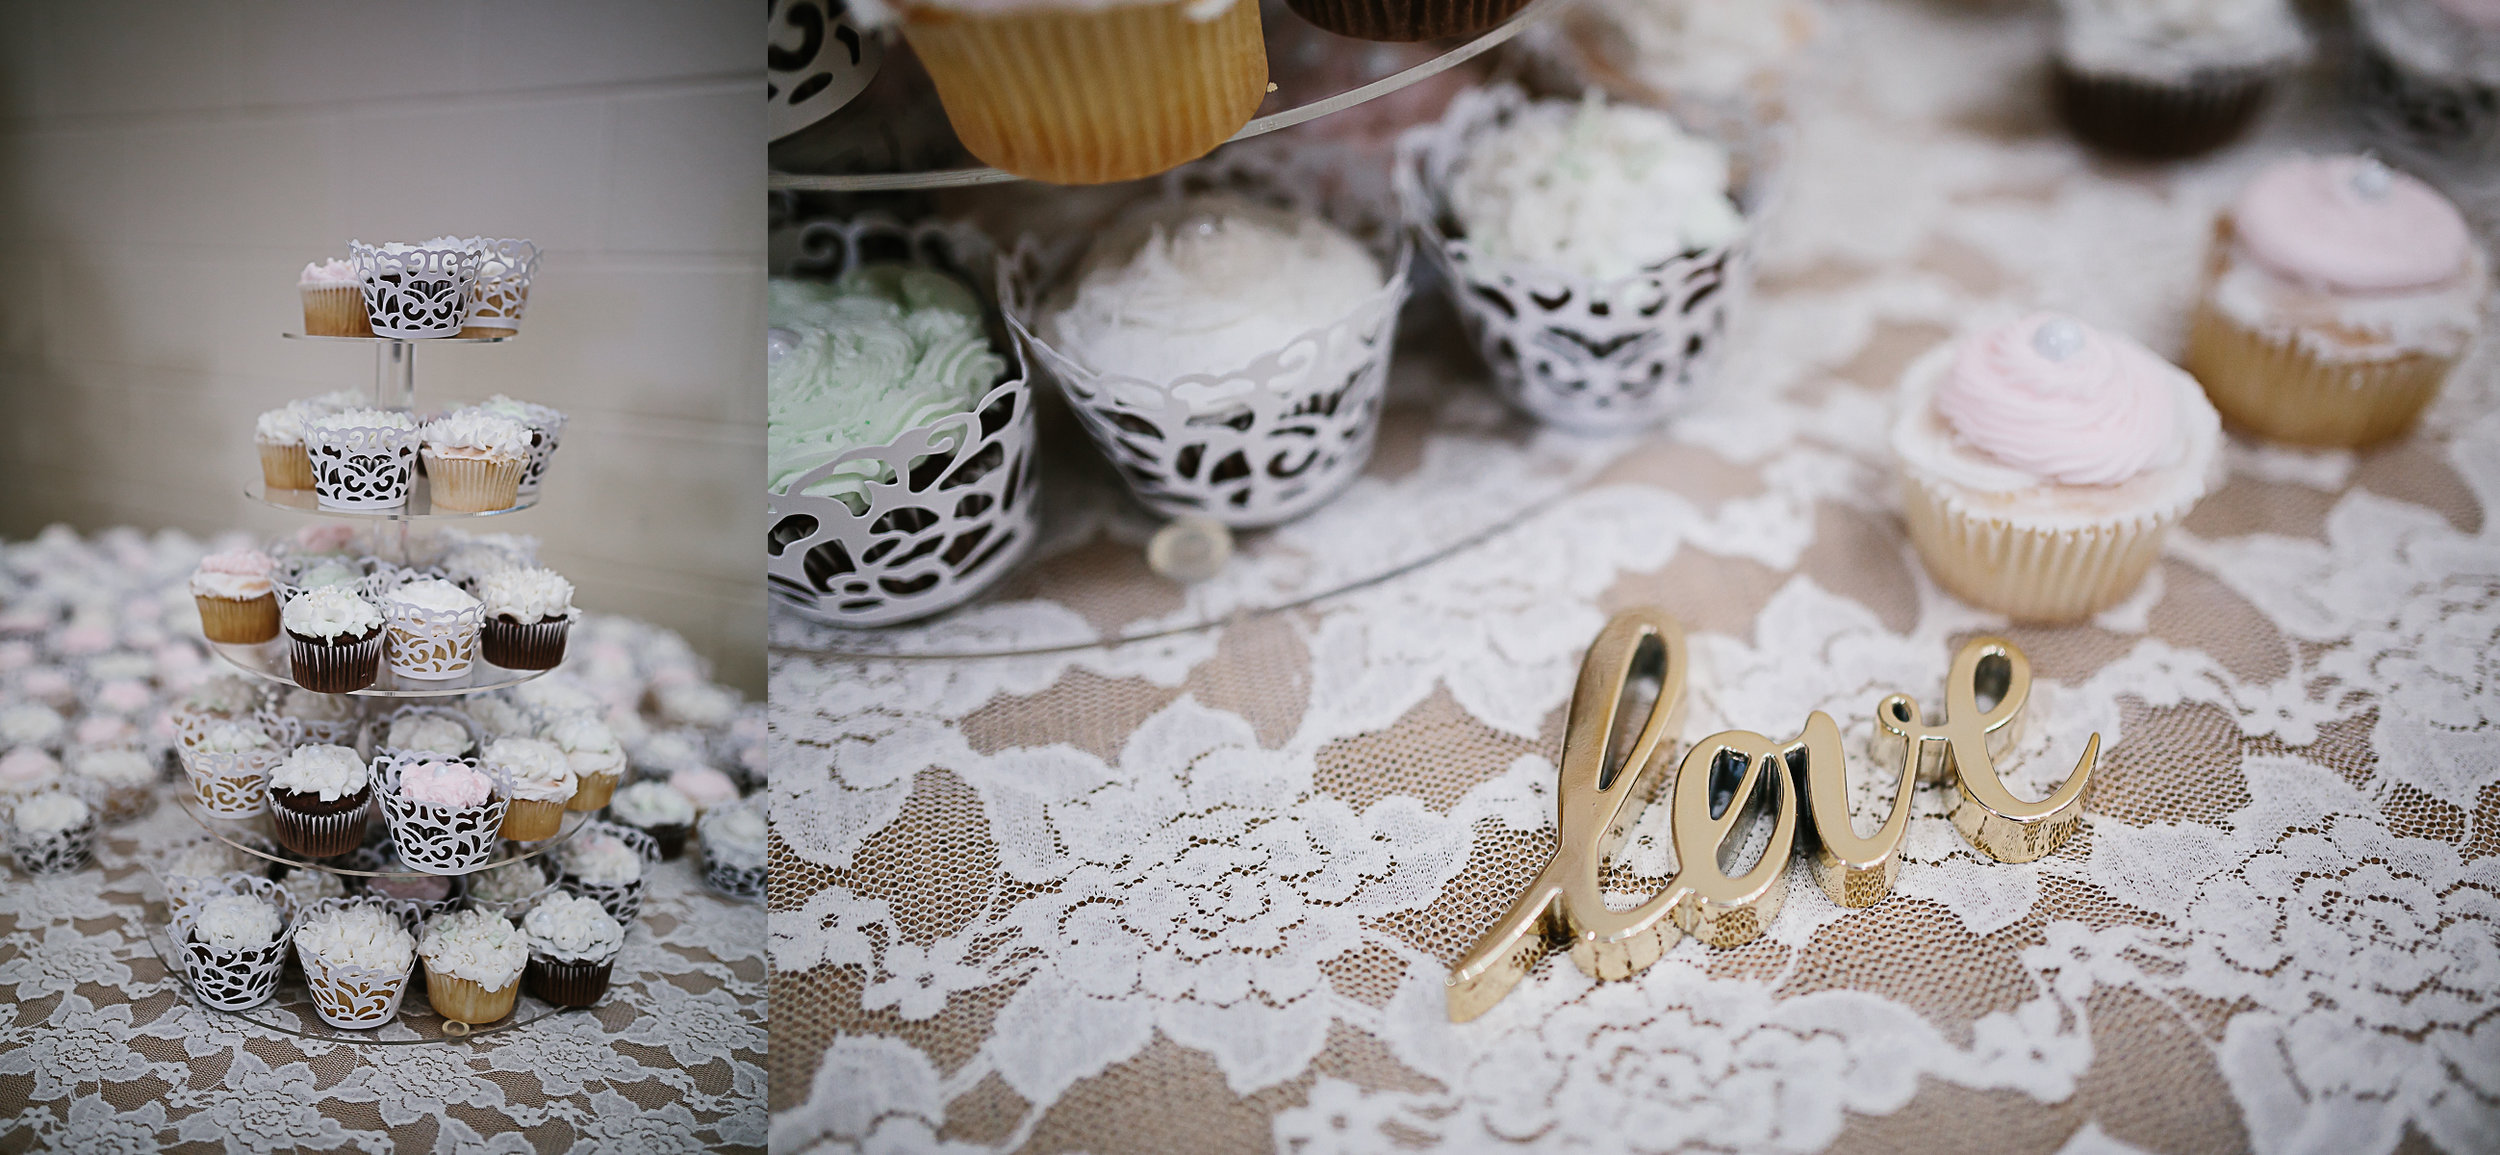 Wedding cupcake layout by Corrie Mick Photography.jpg